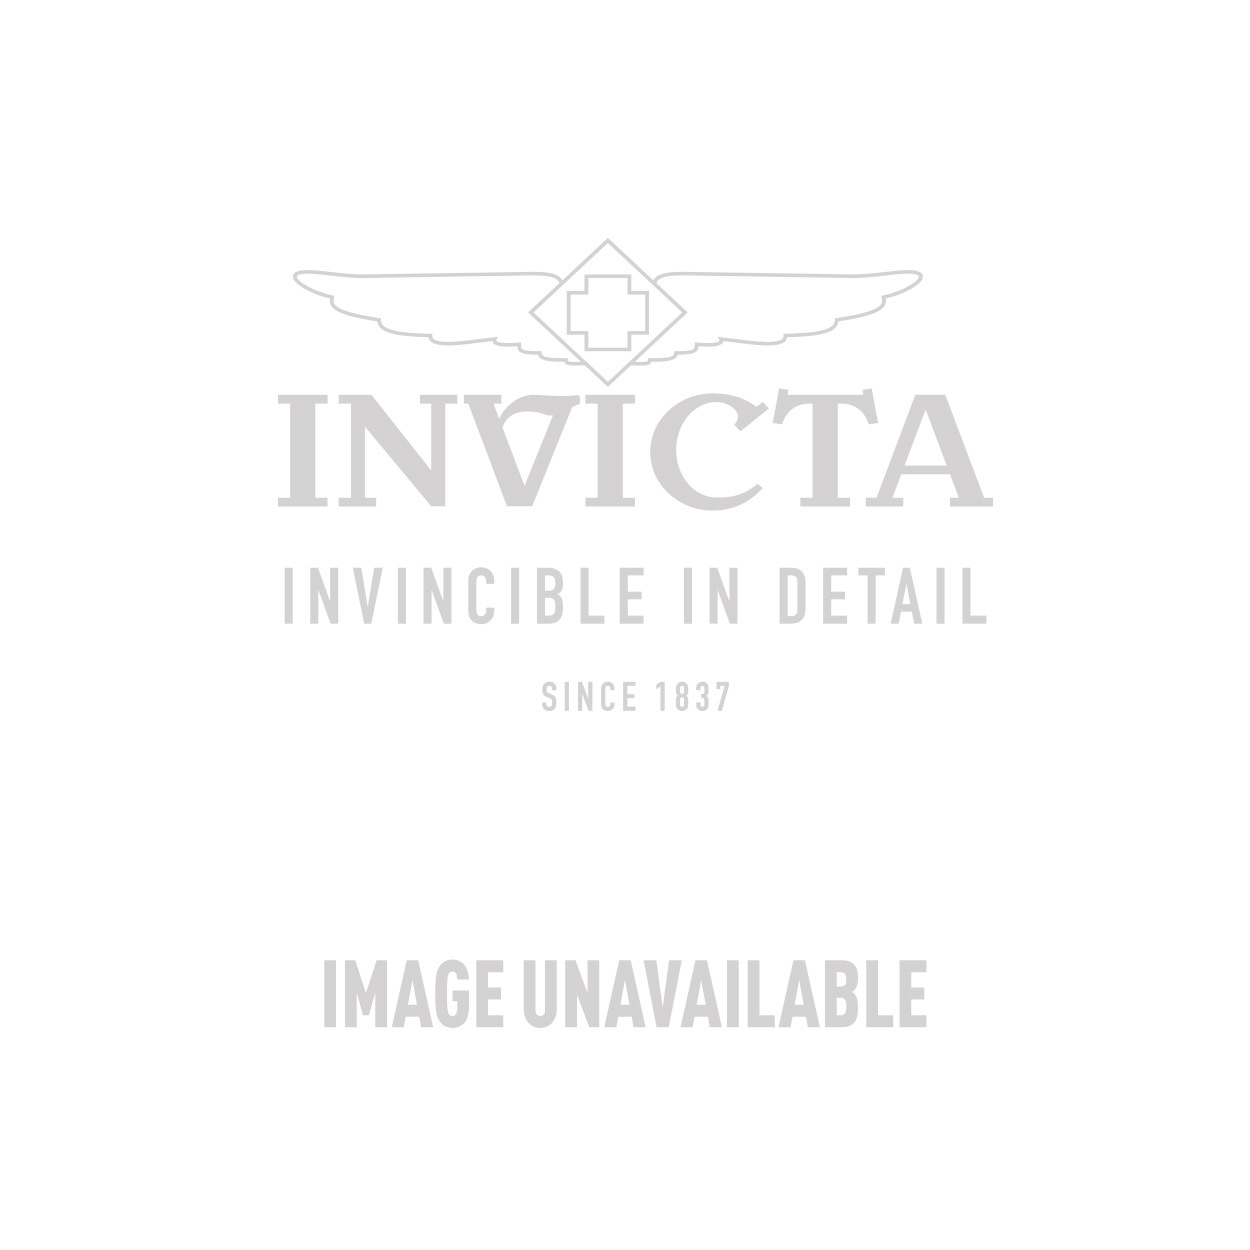 INVICTA Jewelry Paradiso Necklaces 68 21.2 Silver 925 and Wenge Wood Rhodium+Wood - Model J0088